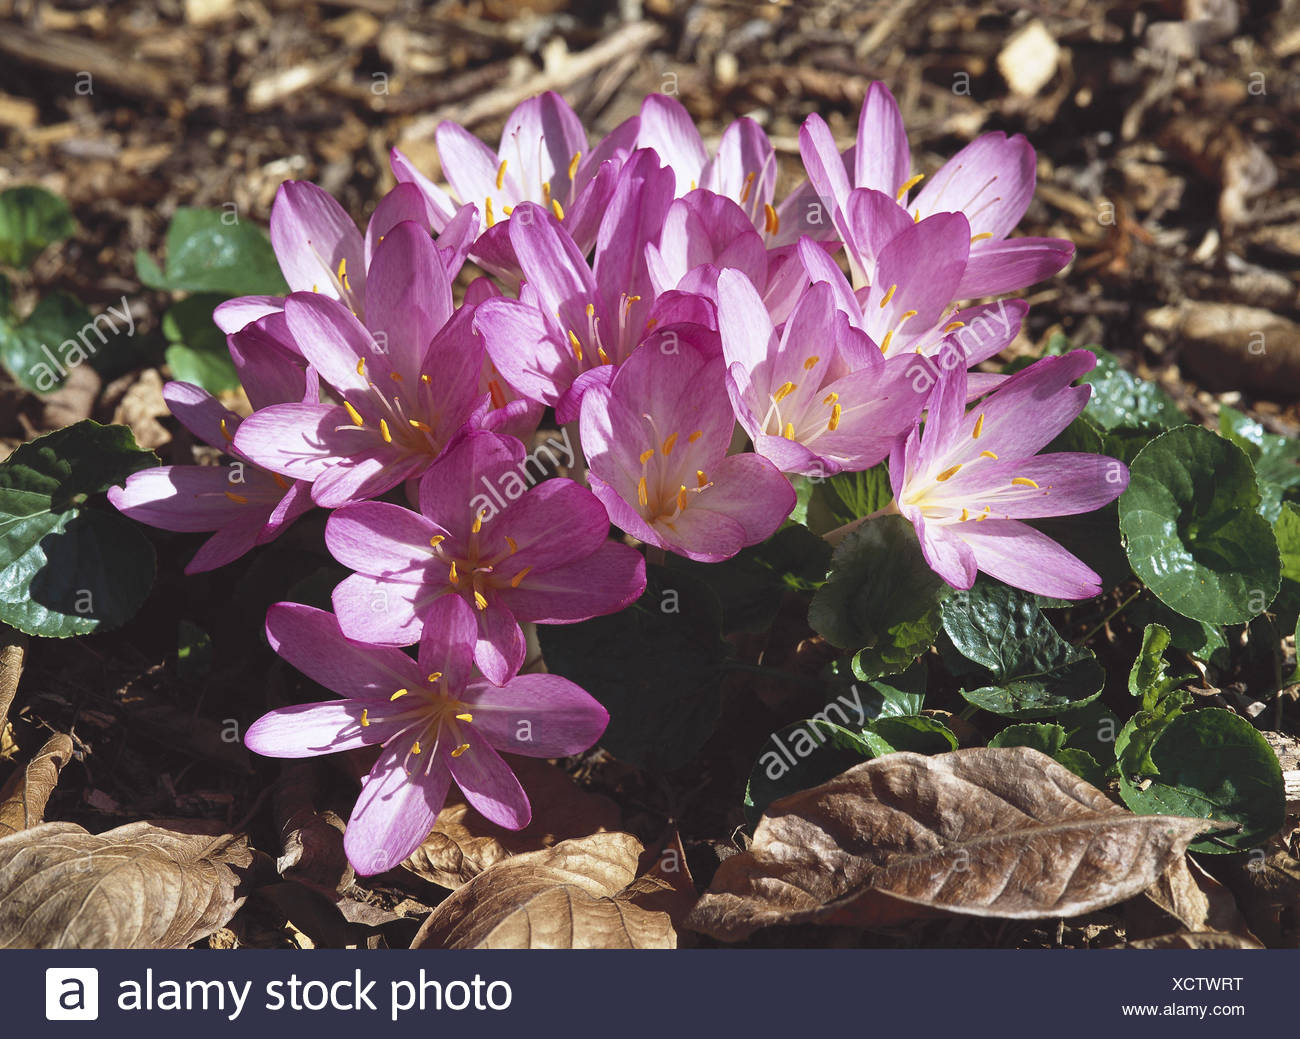 Meadow saffron colchicum autumnale plants flowers blossom autumn flower liliaceae lily plants crocus kind meadow saffron michelwurz winter breath hahnenklten hens poison autumn lily dog flower izmirmasajfo